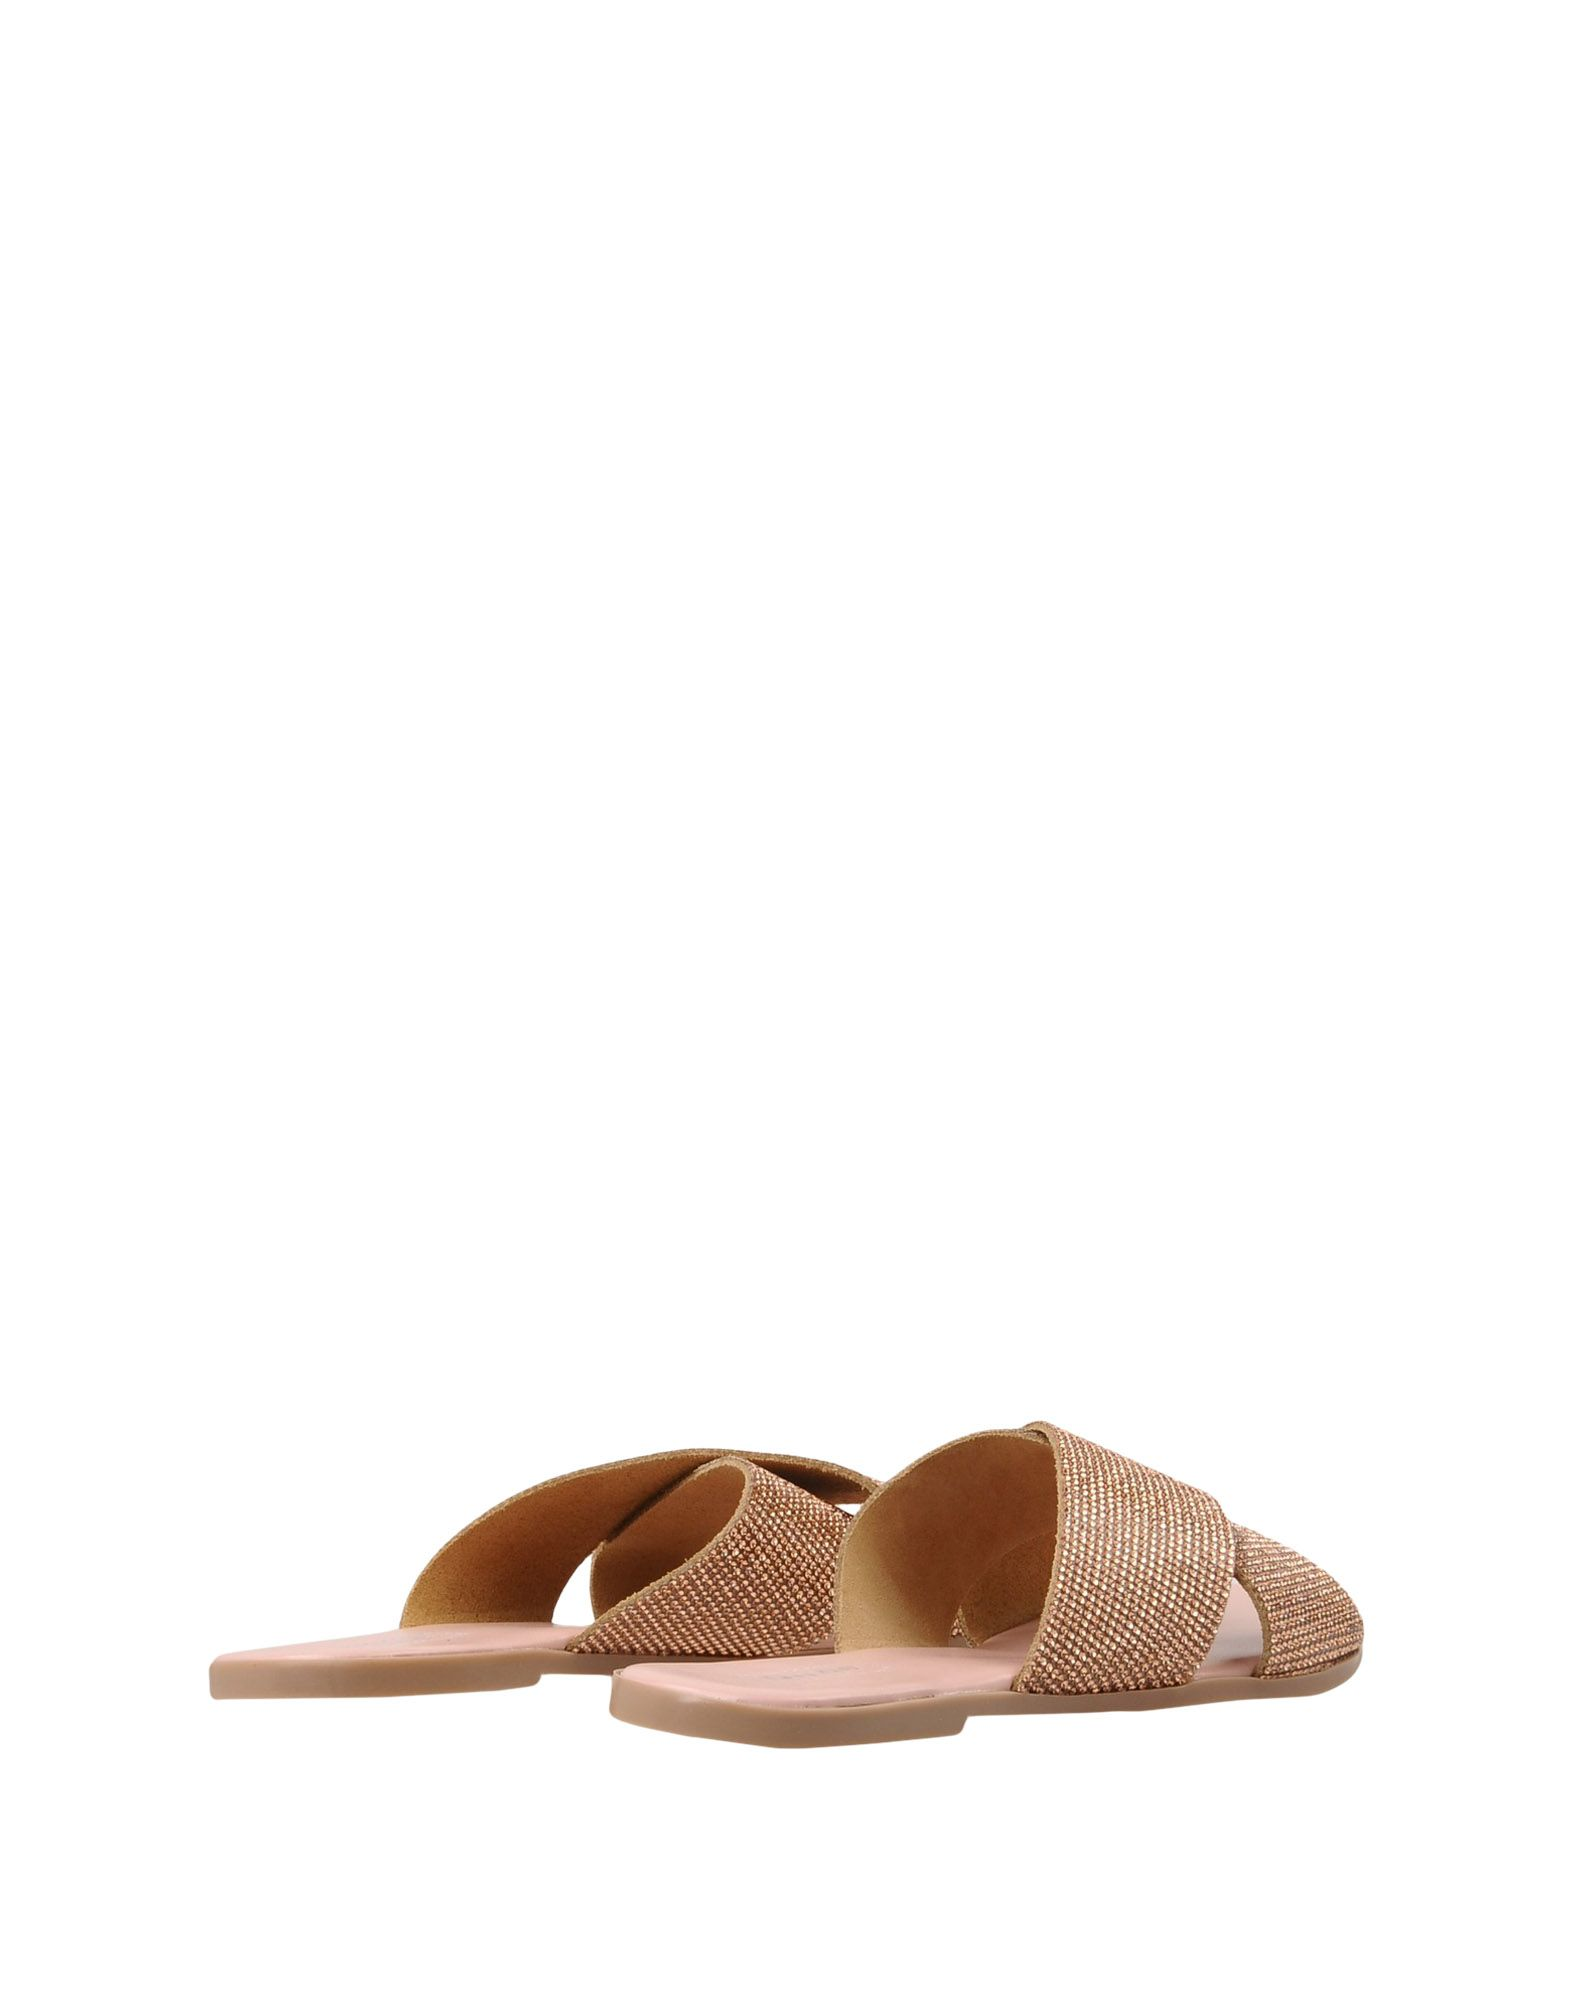 Sandales Dune London Nevadaa - Femme - Sandales Dune London sur